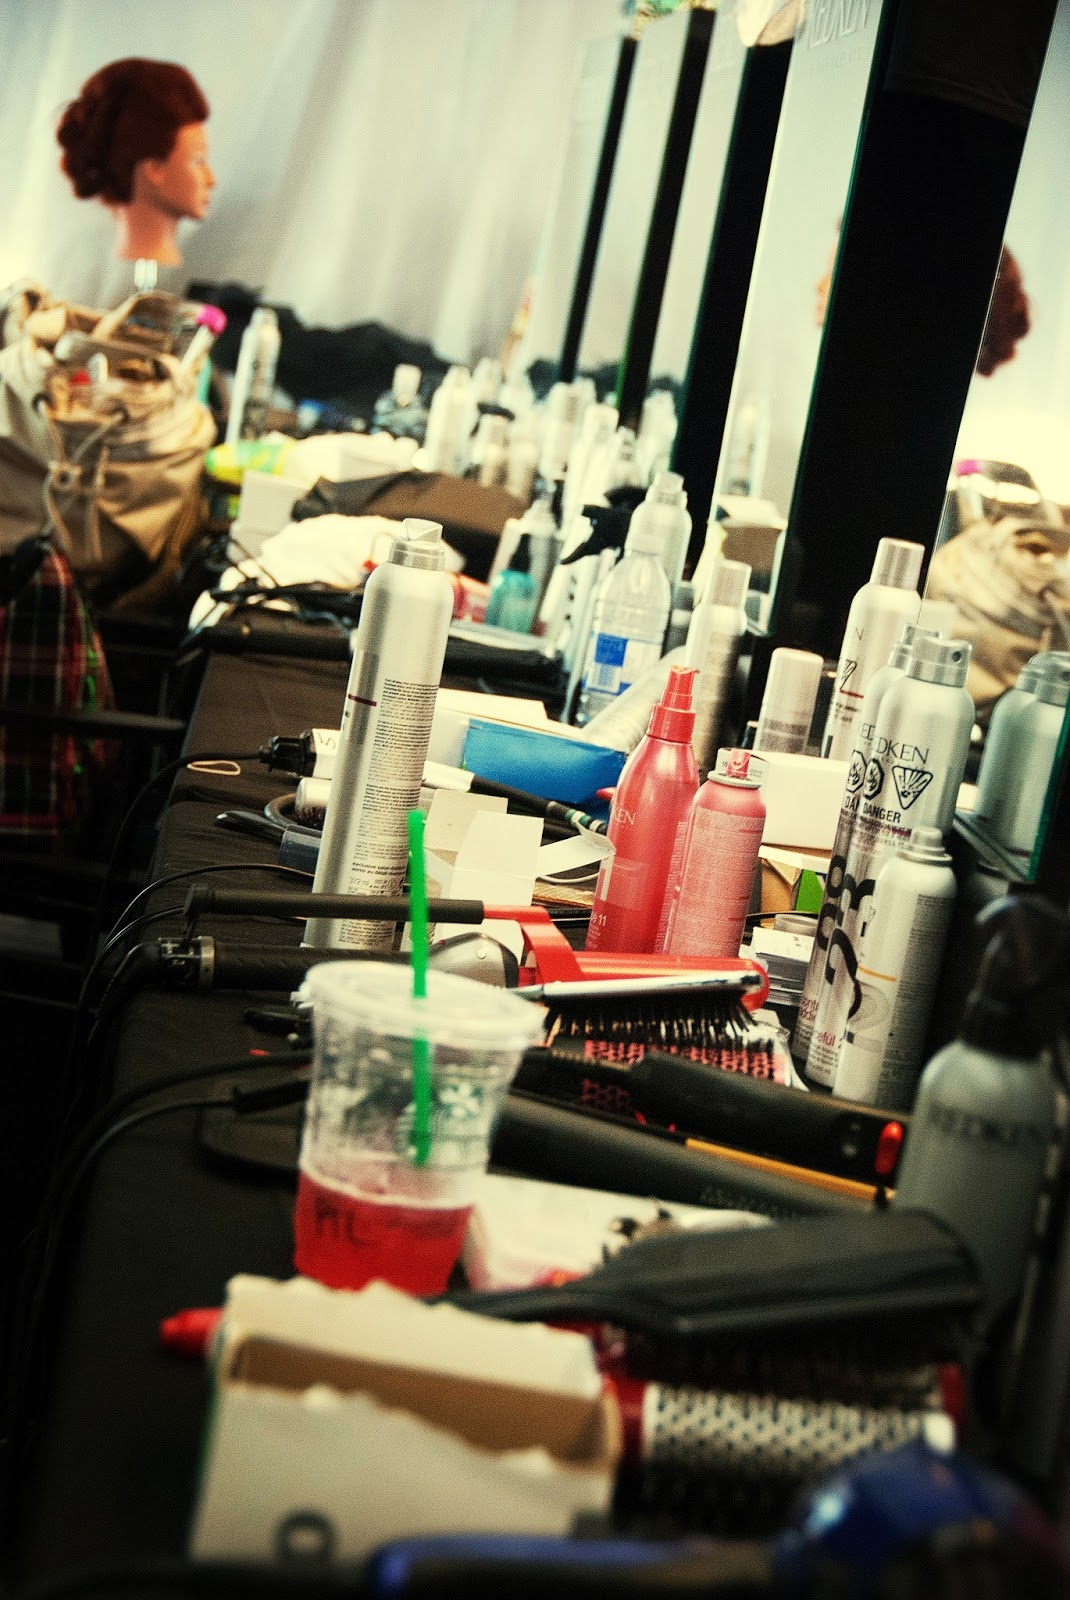 salon backstage fashion show festival mode design Montreal